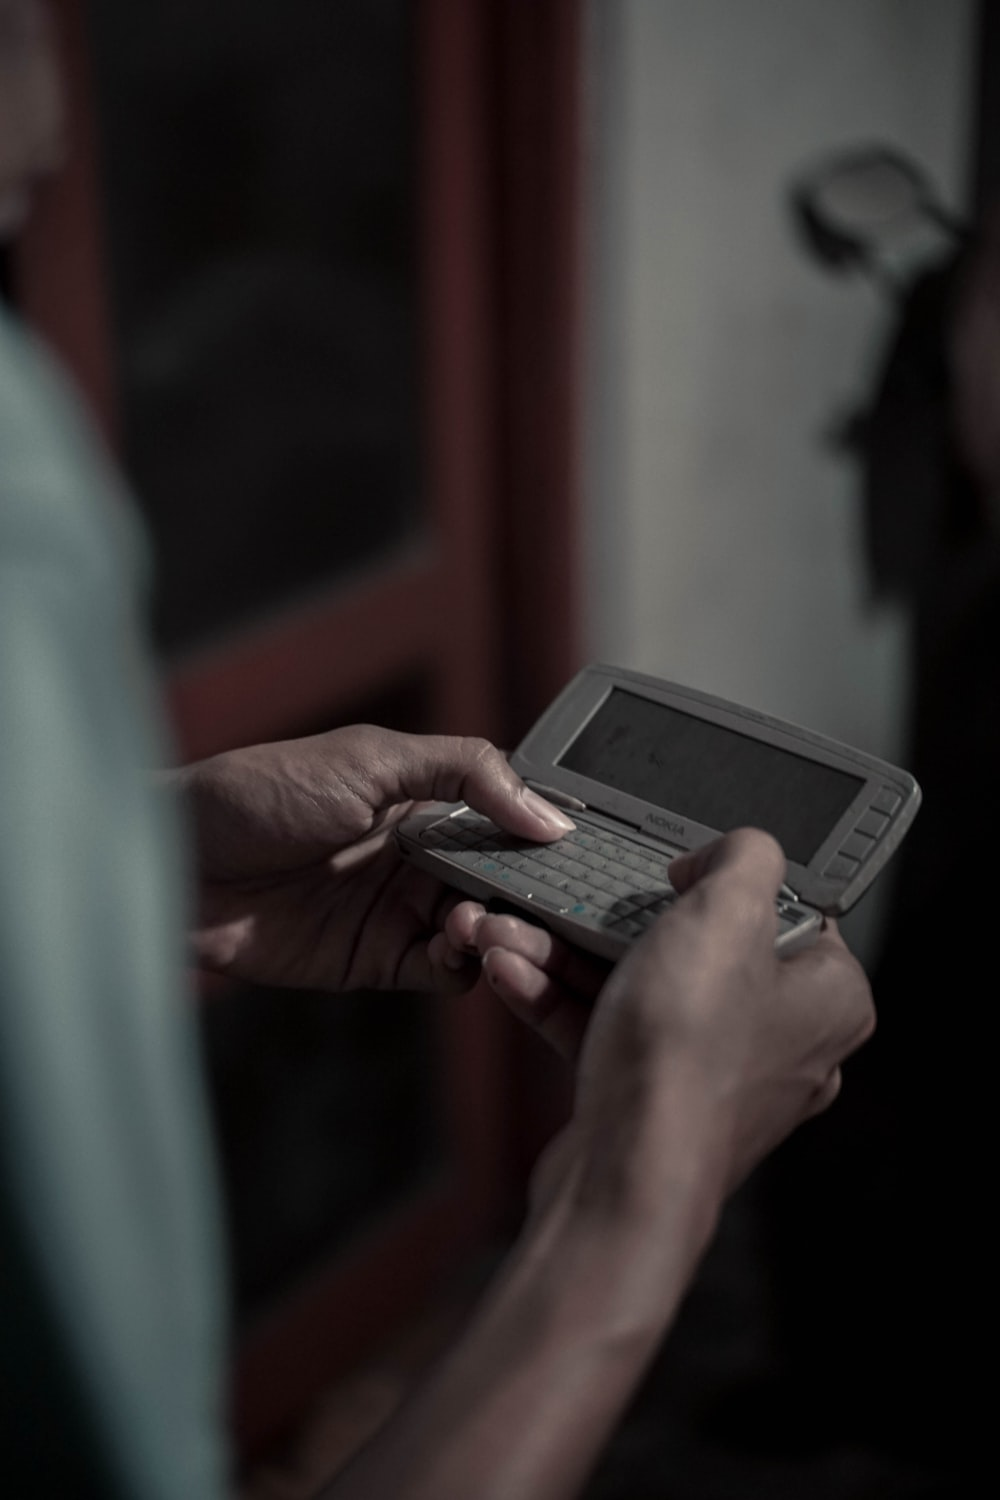 person using silver Nokia flip mobile phone